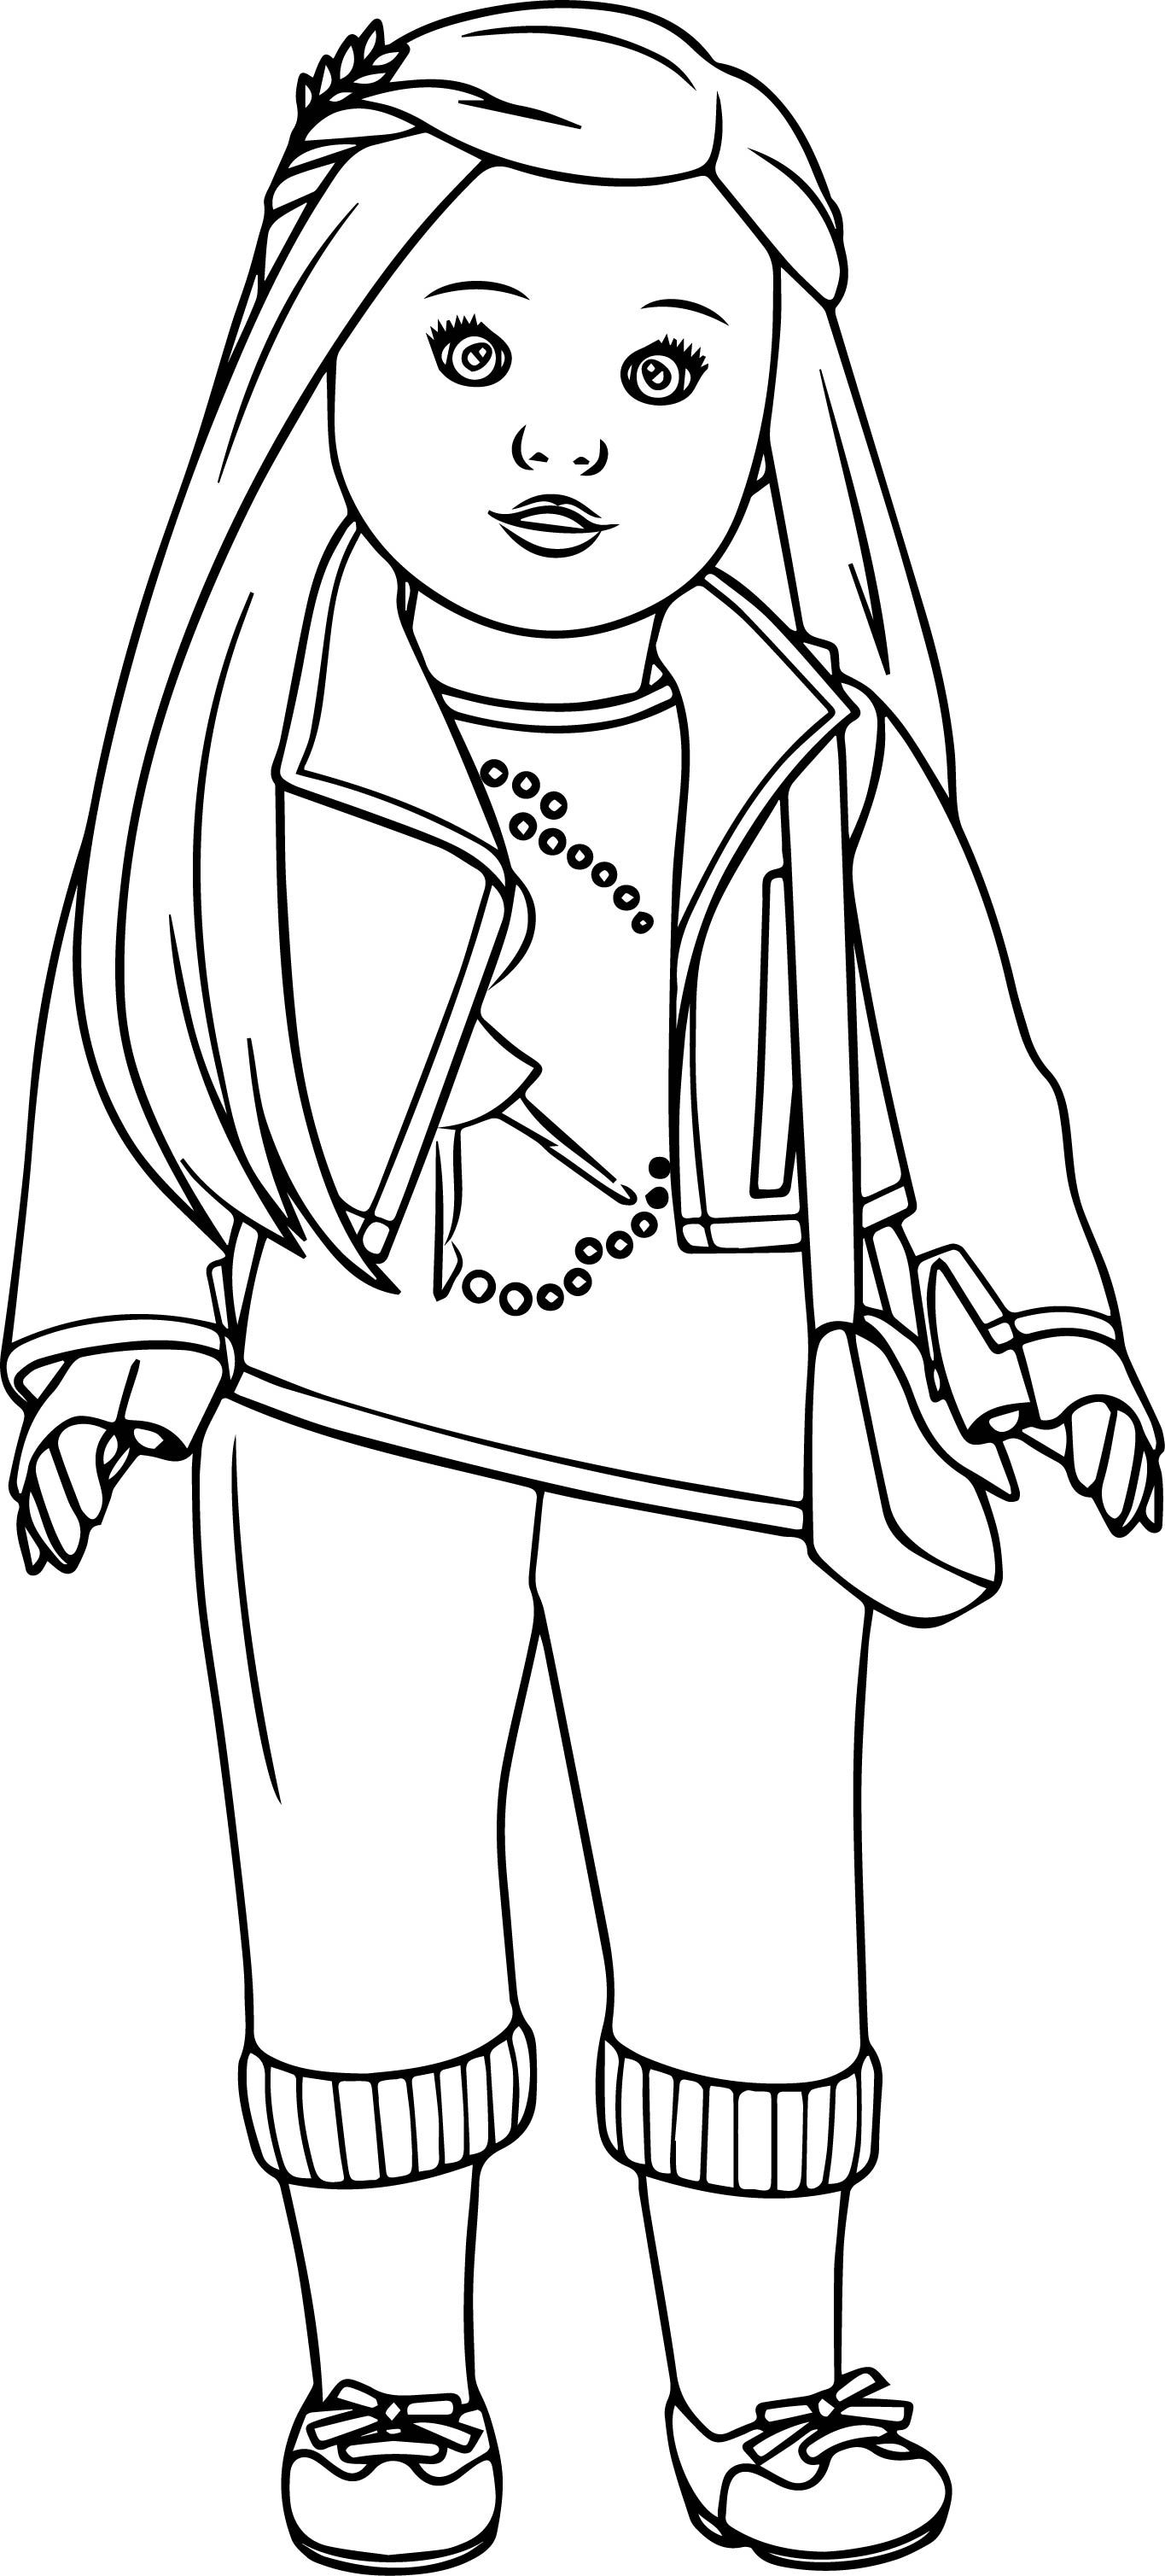 Isabelle American Girl Doll Coloring Pages Coloring Pages For Girls American Girl Baby Coloring Pages